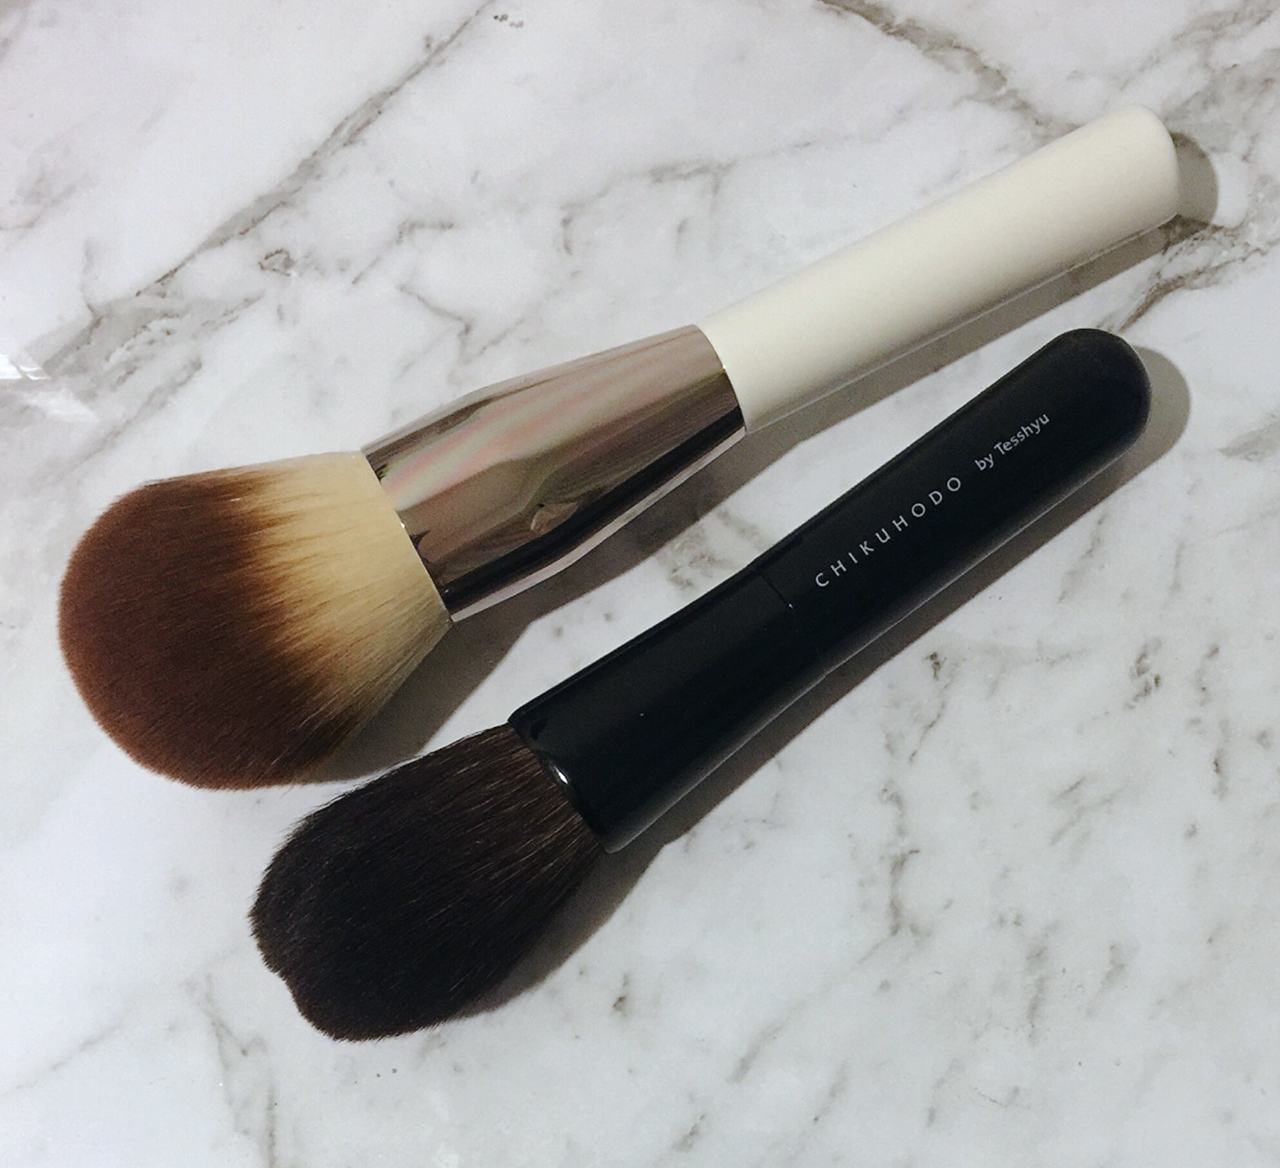 la-mer-the-powder-brush-comparison-with-chikuhodo-z9